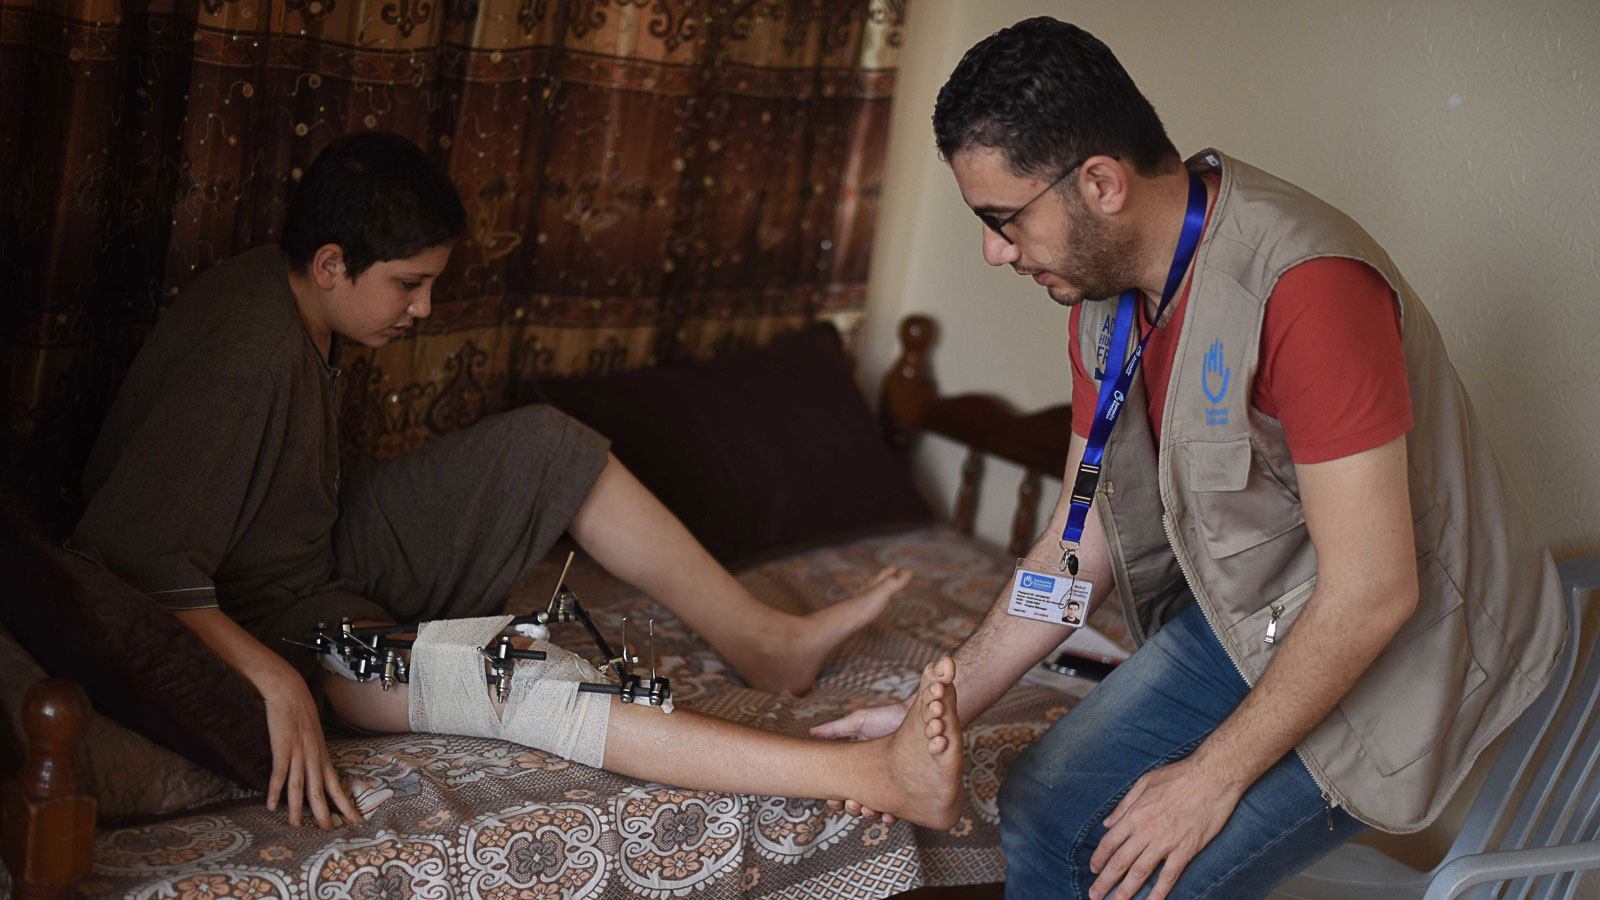 Gaza emergency | Regaining mobility and independence one day at a time